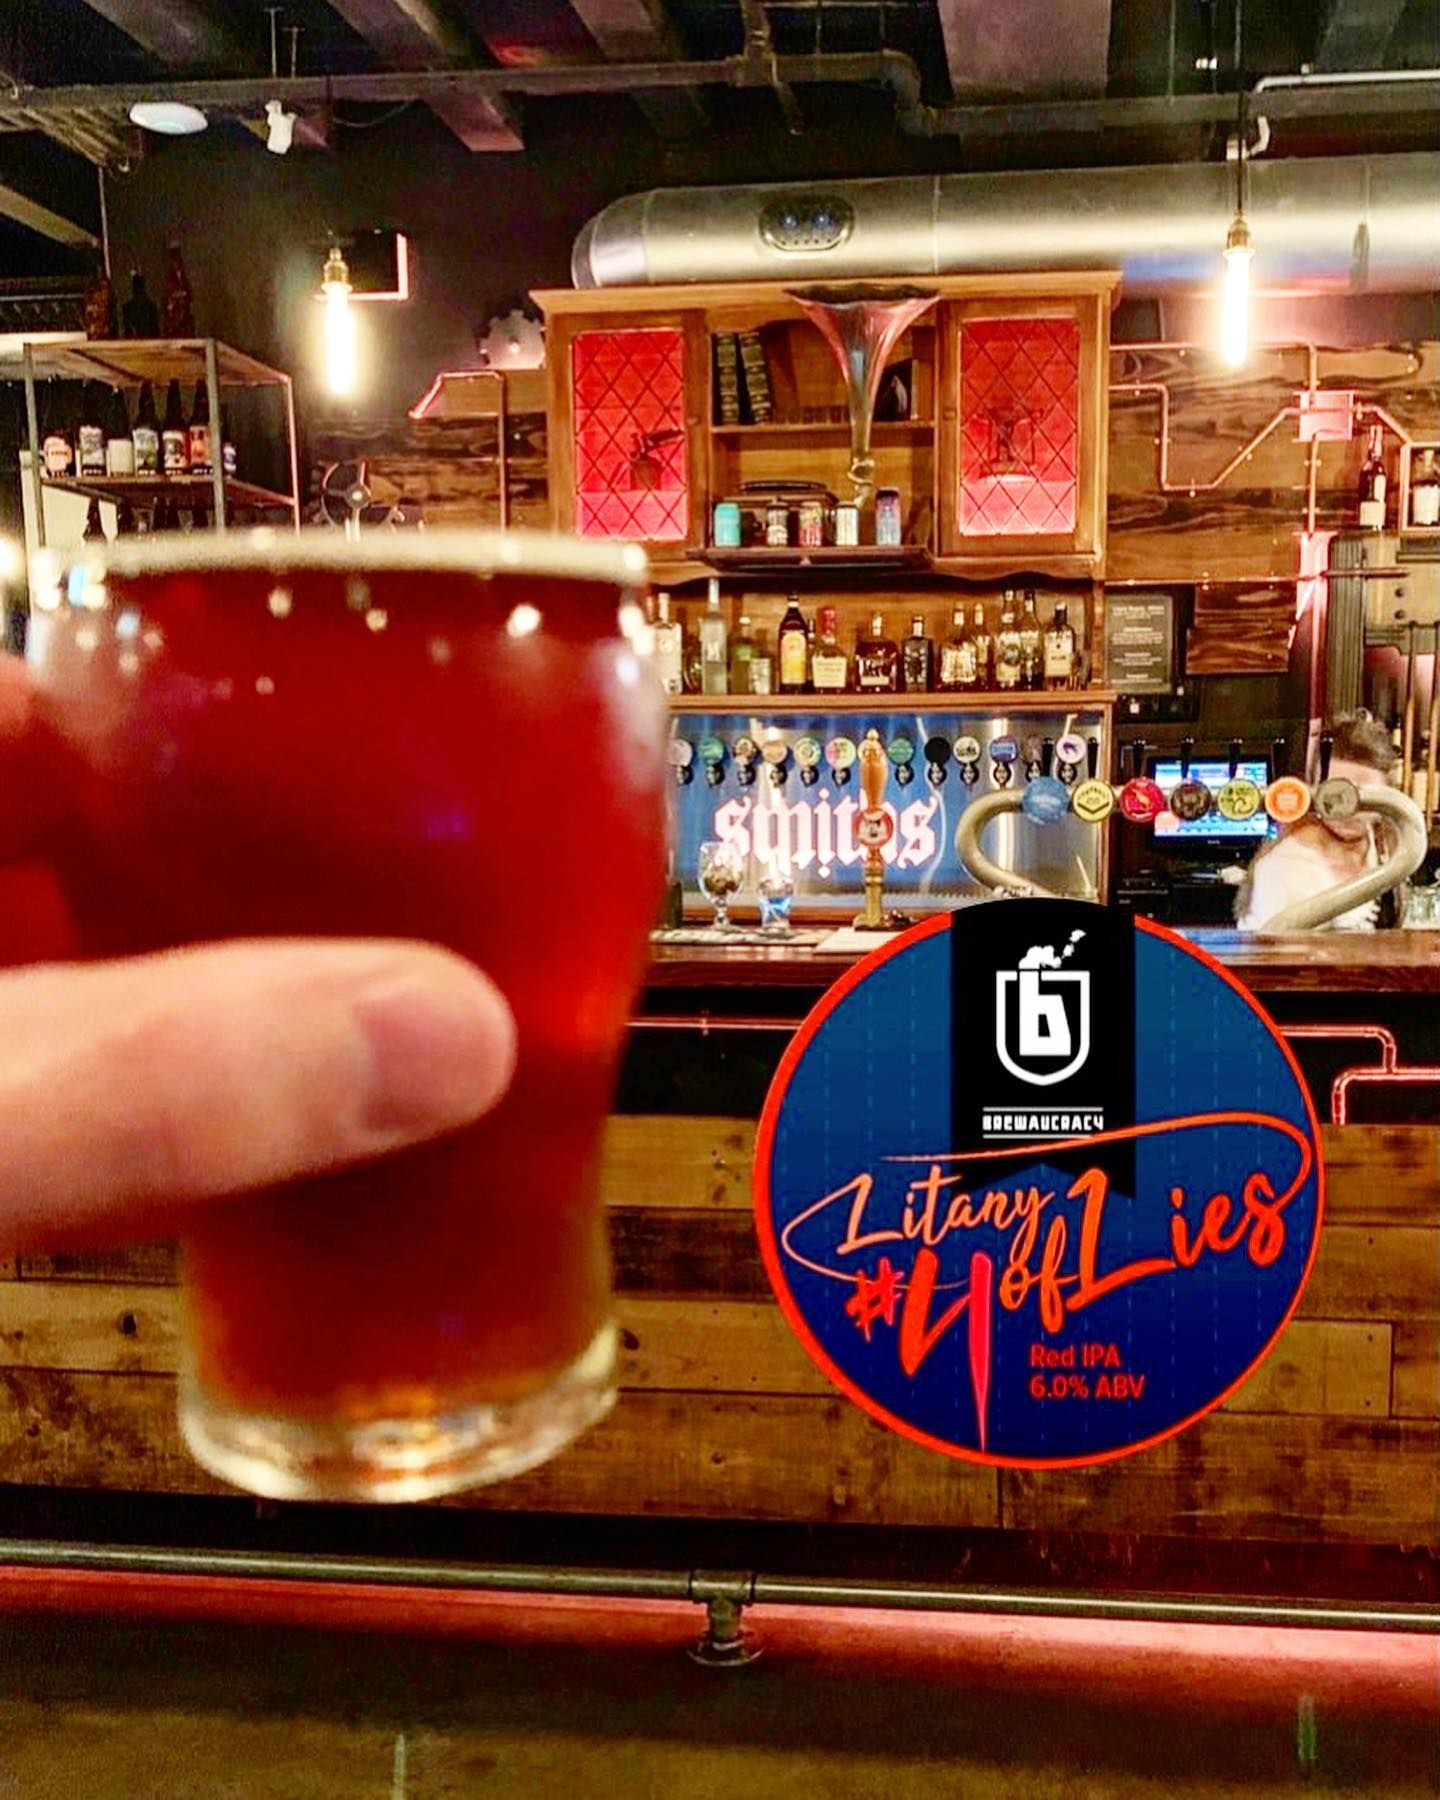 For You Today From My Last Smithscraftbeer Tasting Session I Have Brewaucracy Nz Hamilton Nz With Their Litany Of Lies Lie No4 Red Ip In 2020 Malt Aromatic Ipa